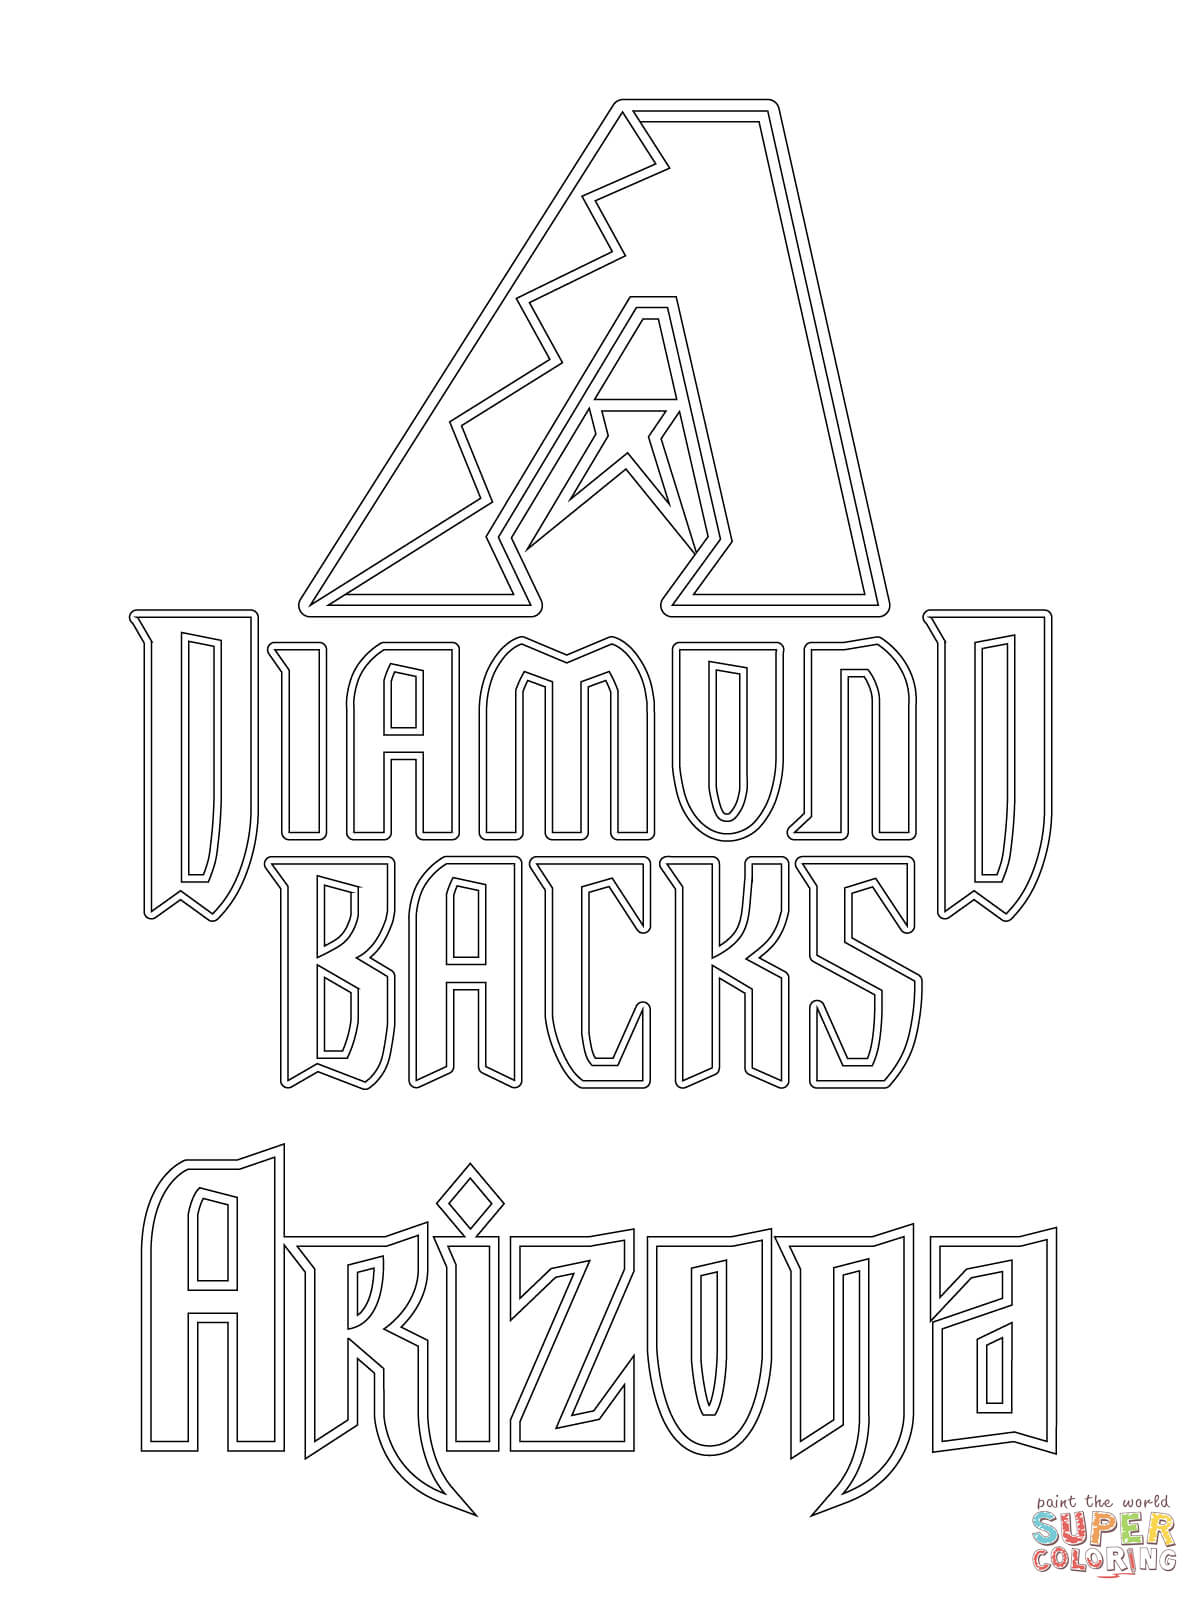 diamondbacks coloring pages for kids - photo#3